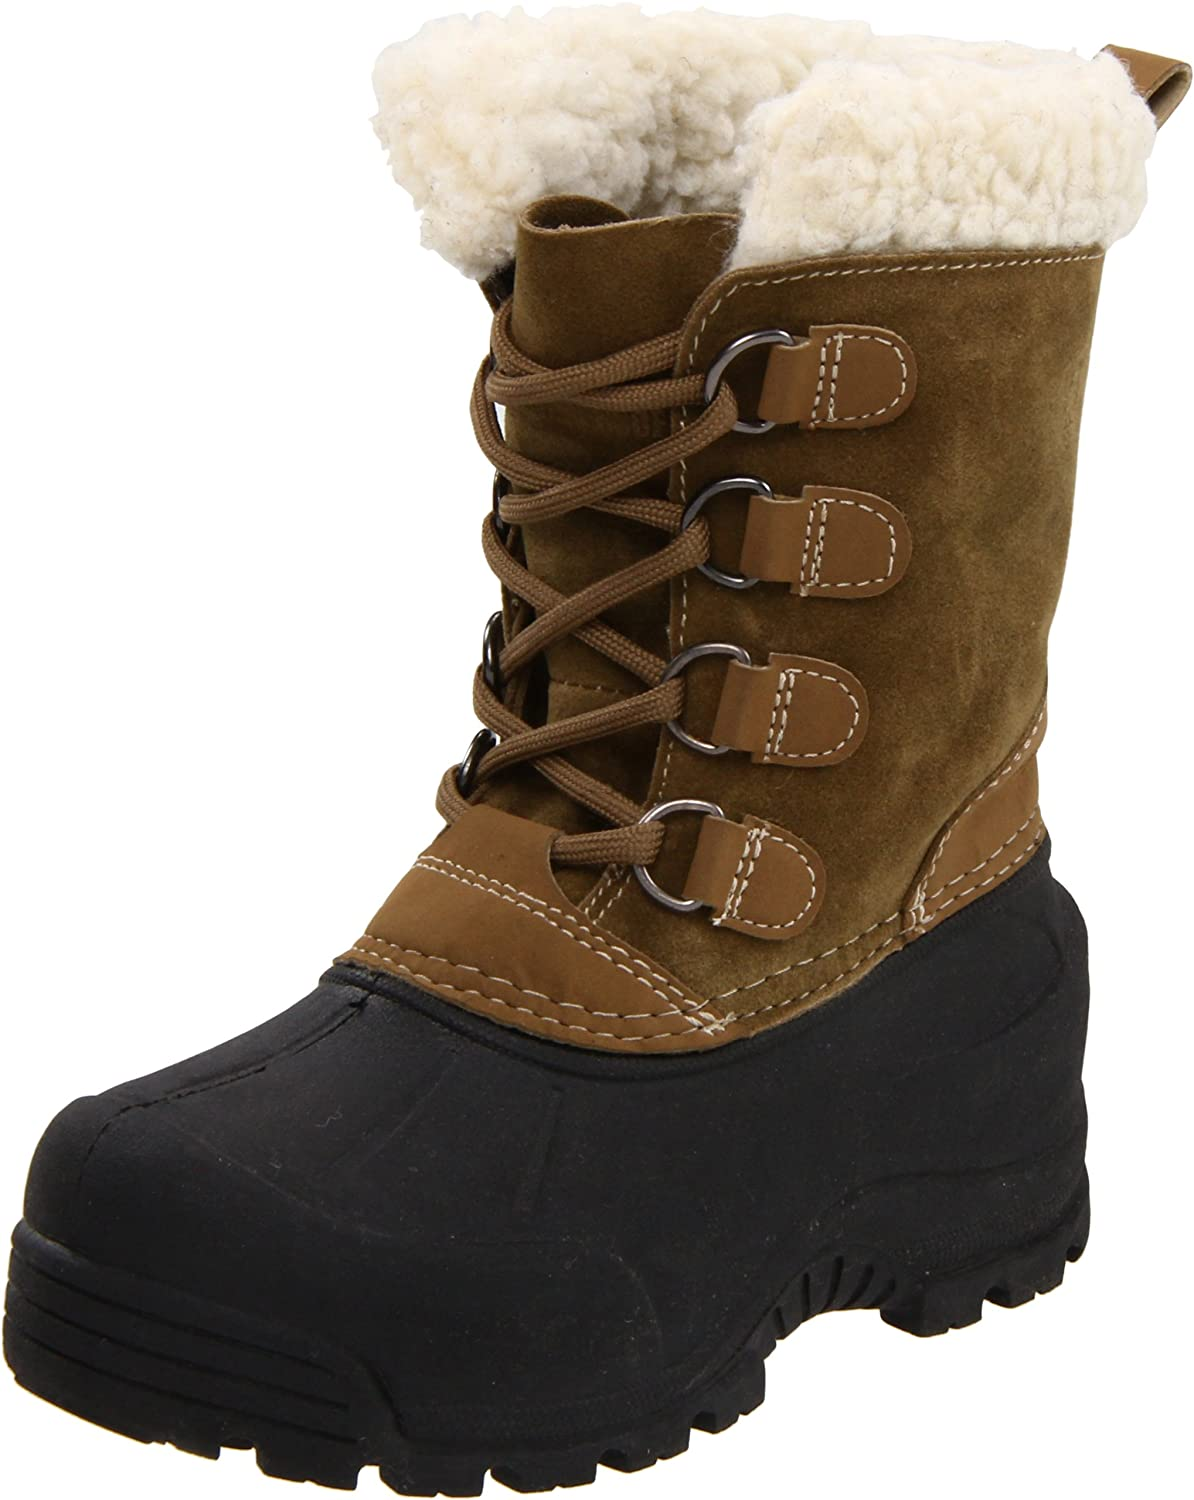 Northside Back Country Snow Boot (Little Kid/Big Kid),Tan,13 M US Little Kid